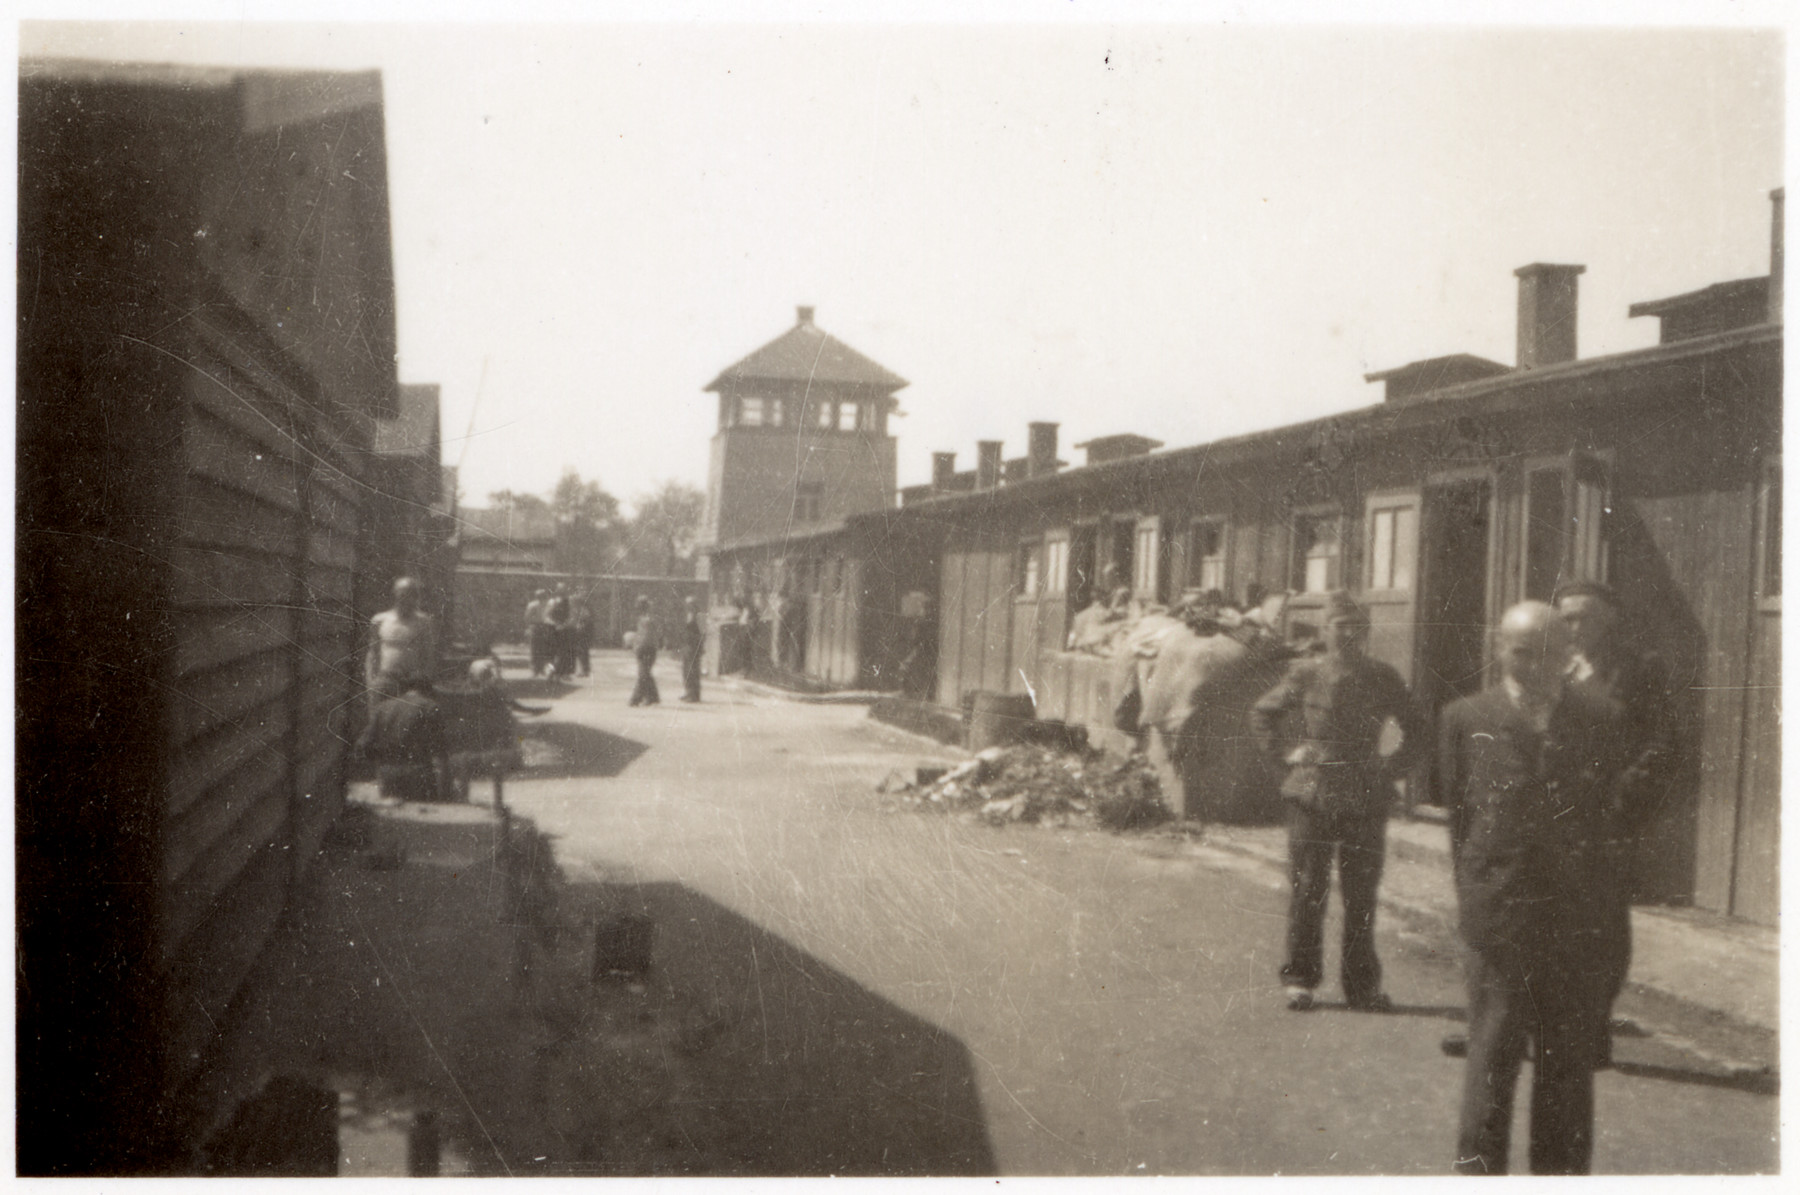 Survivors and American servicemen stand on a main artery of the Gusen concentration camp following liberation.  A watch tower is in the background.